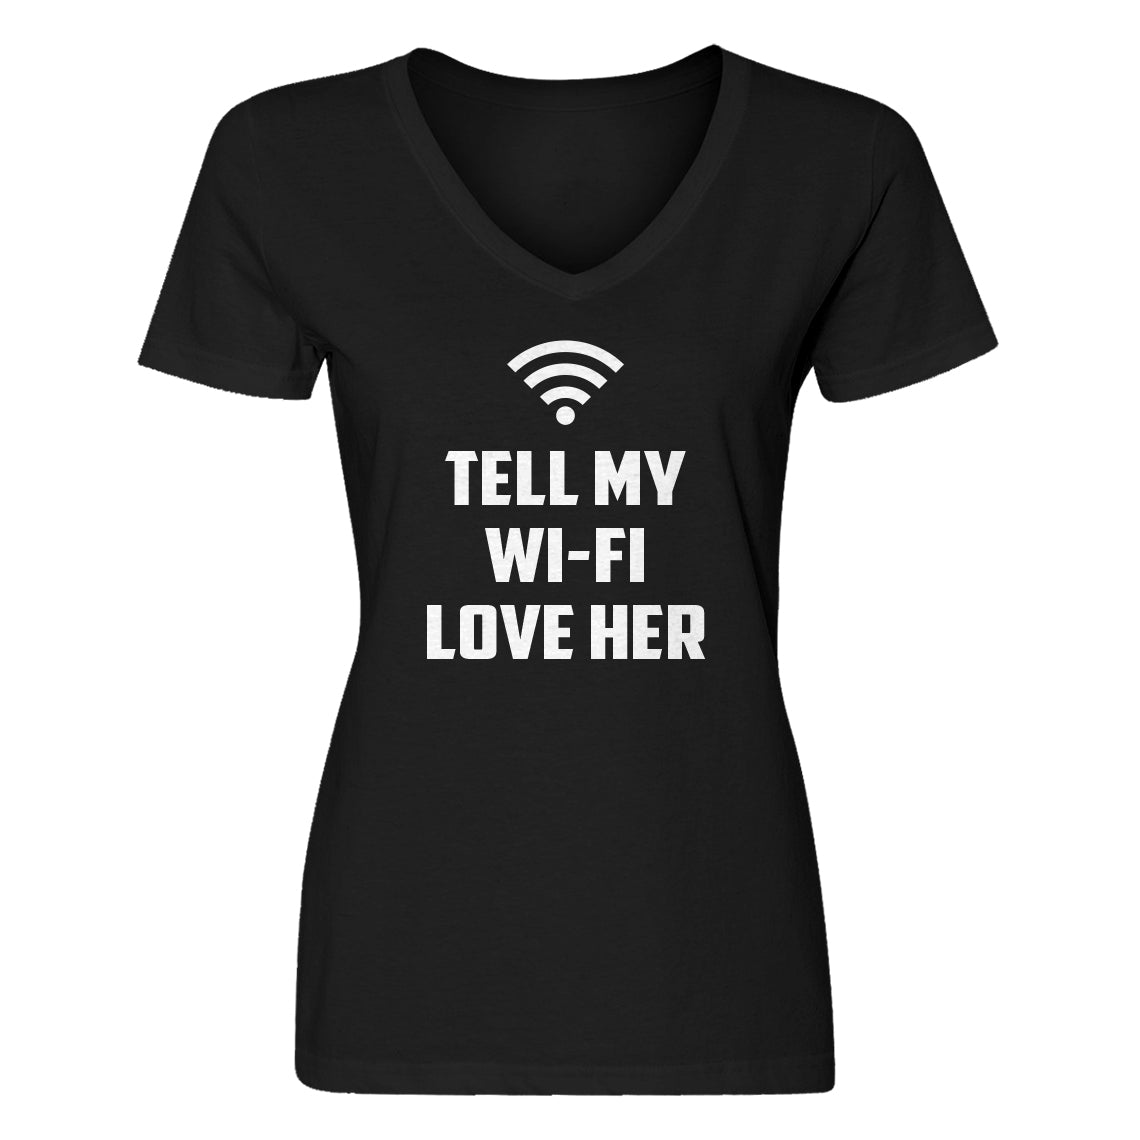 Womens Tell My WI-FI Love Her V-Neck T-shirt